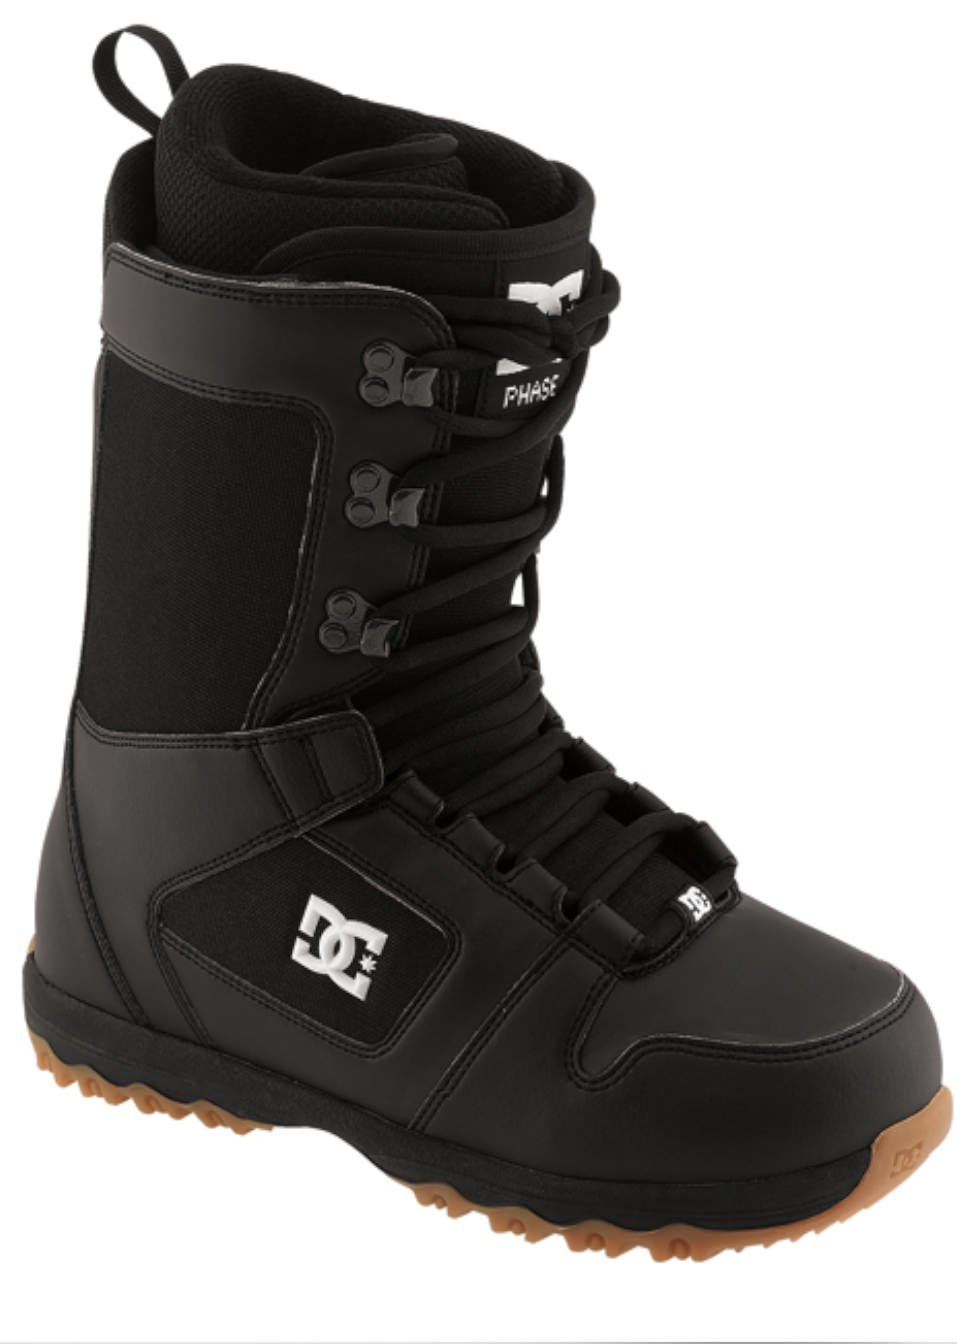 DC SHOES PHASE LM SNOWBOARD STORE